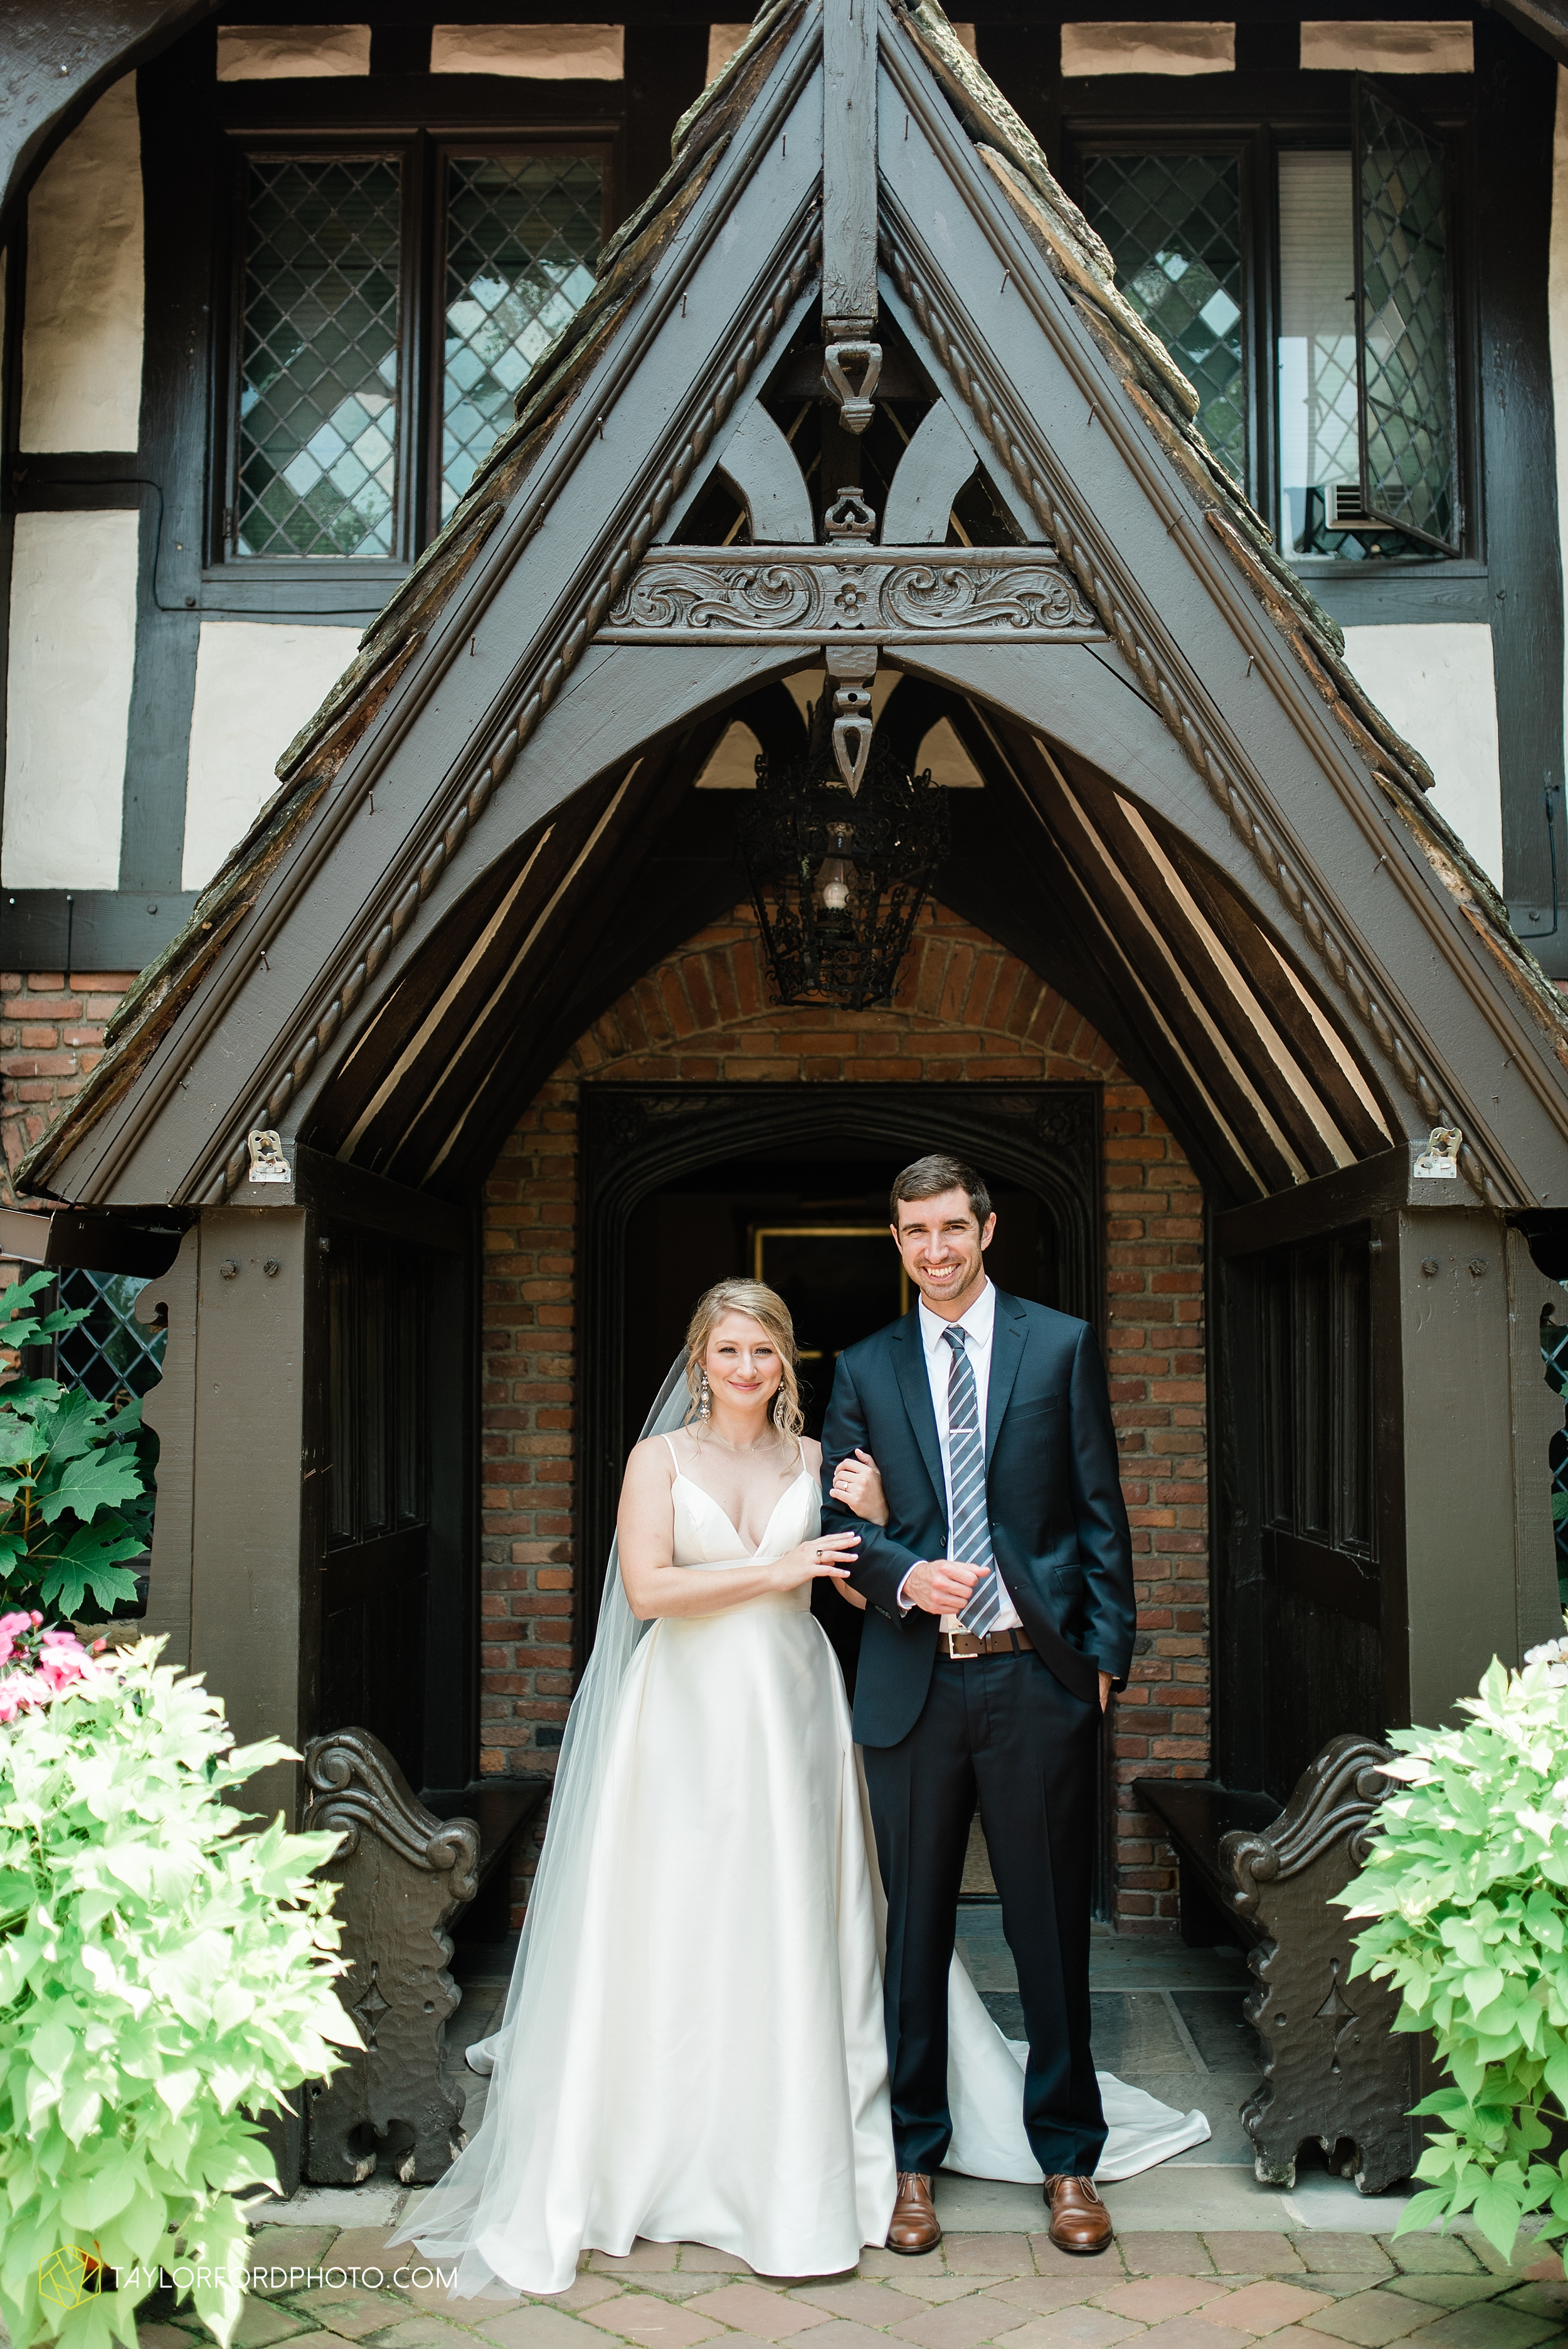 margot-may-evan-kohler-club-at-hillbrook-cleveland-chagrin-falls-outdoor-wedding-bhldn-gardenview-flowers-toledo-photographer-taylor-ford-photographer_9490.jpg